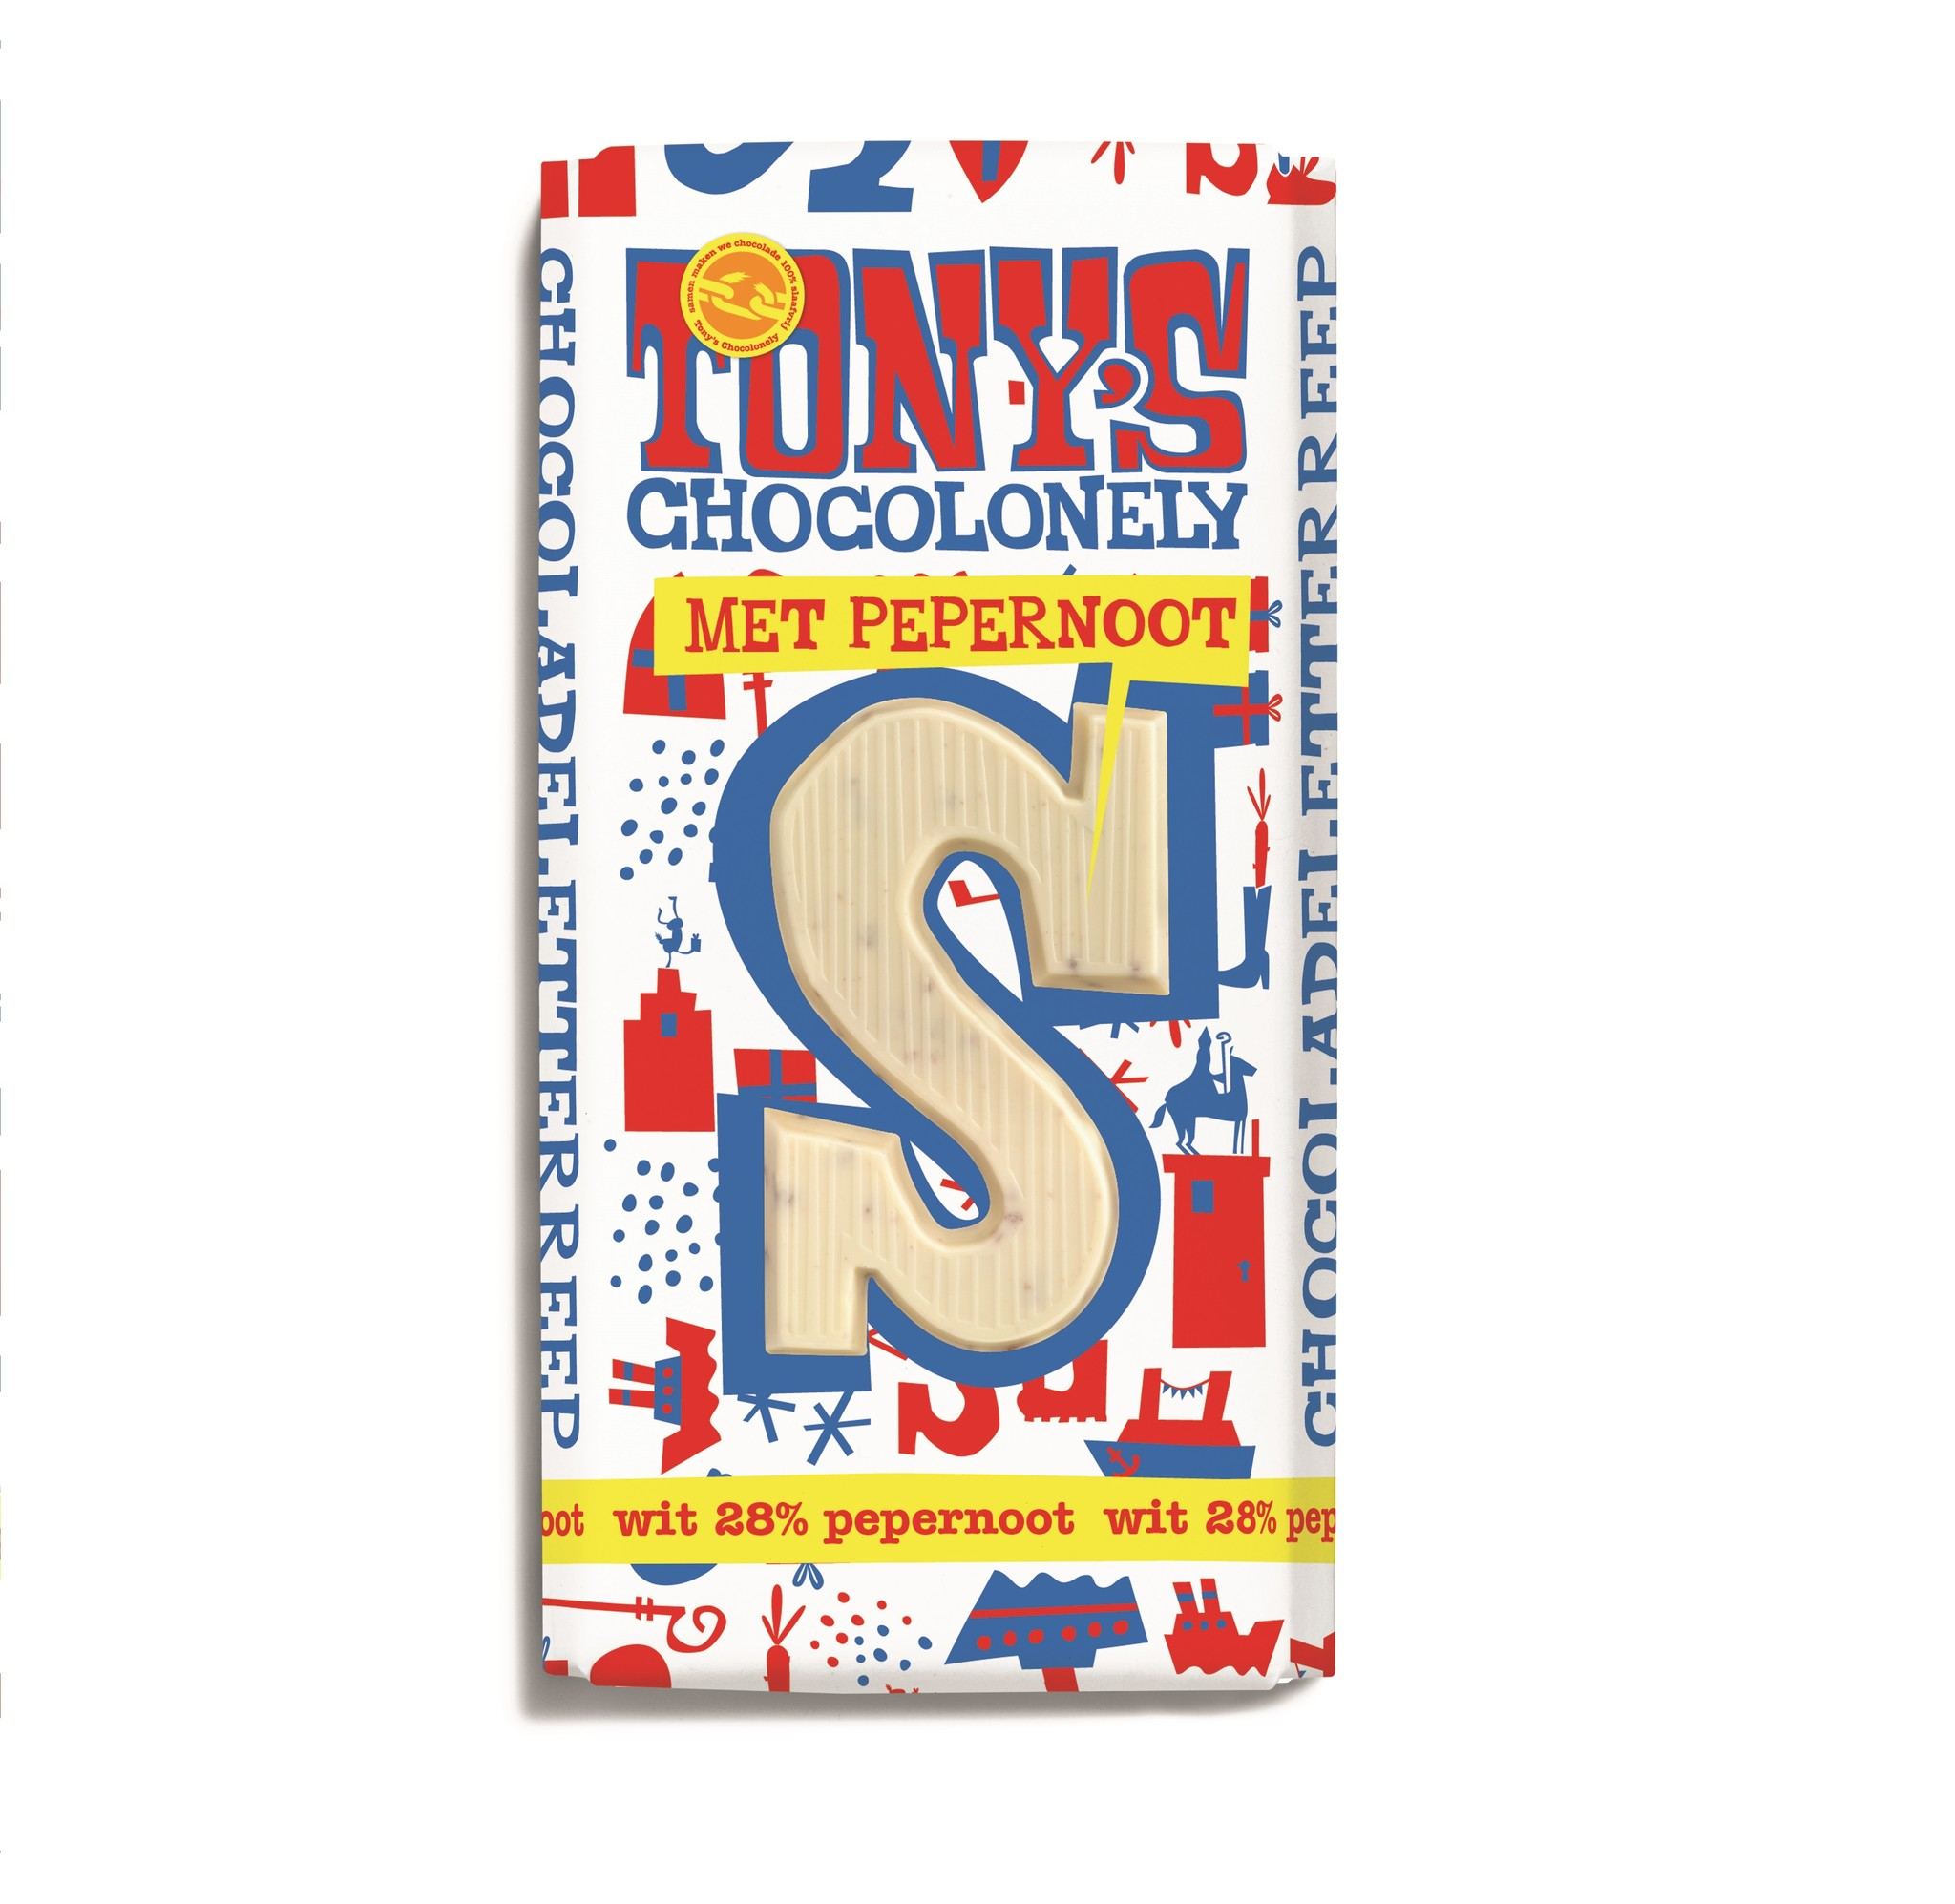 Tony's Chocolonely chocolate letters  Wit pepernoot